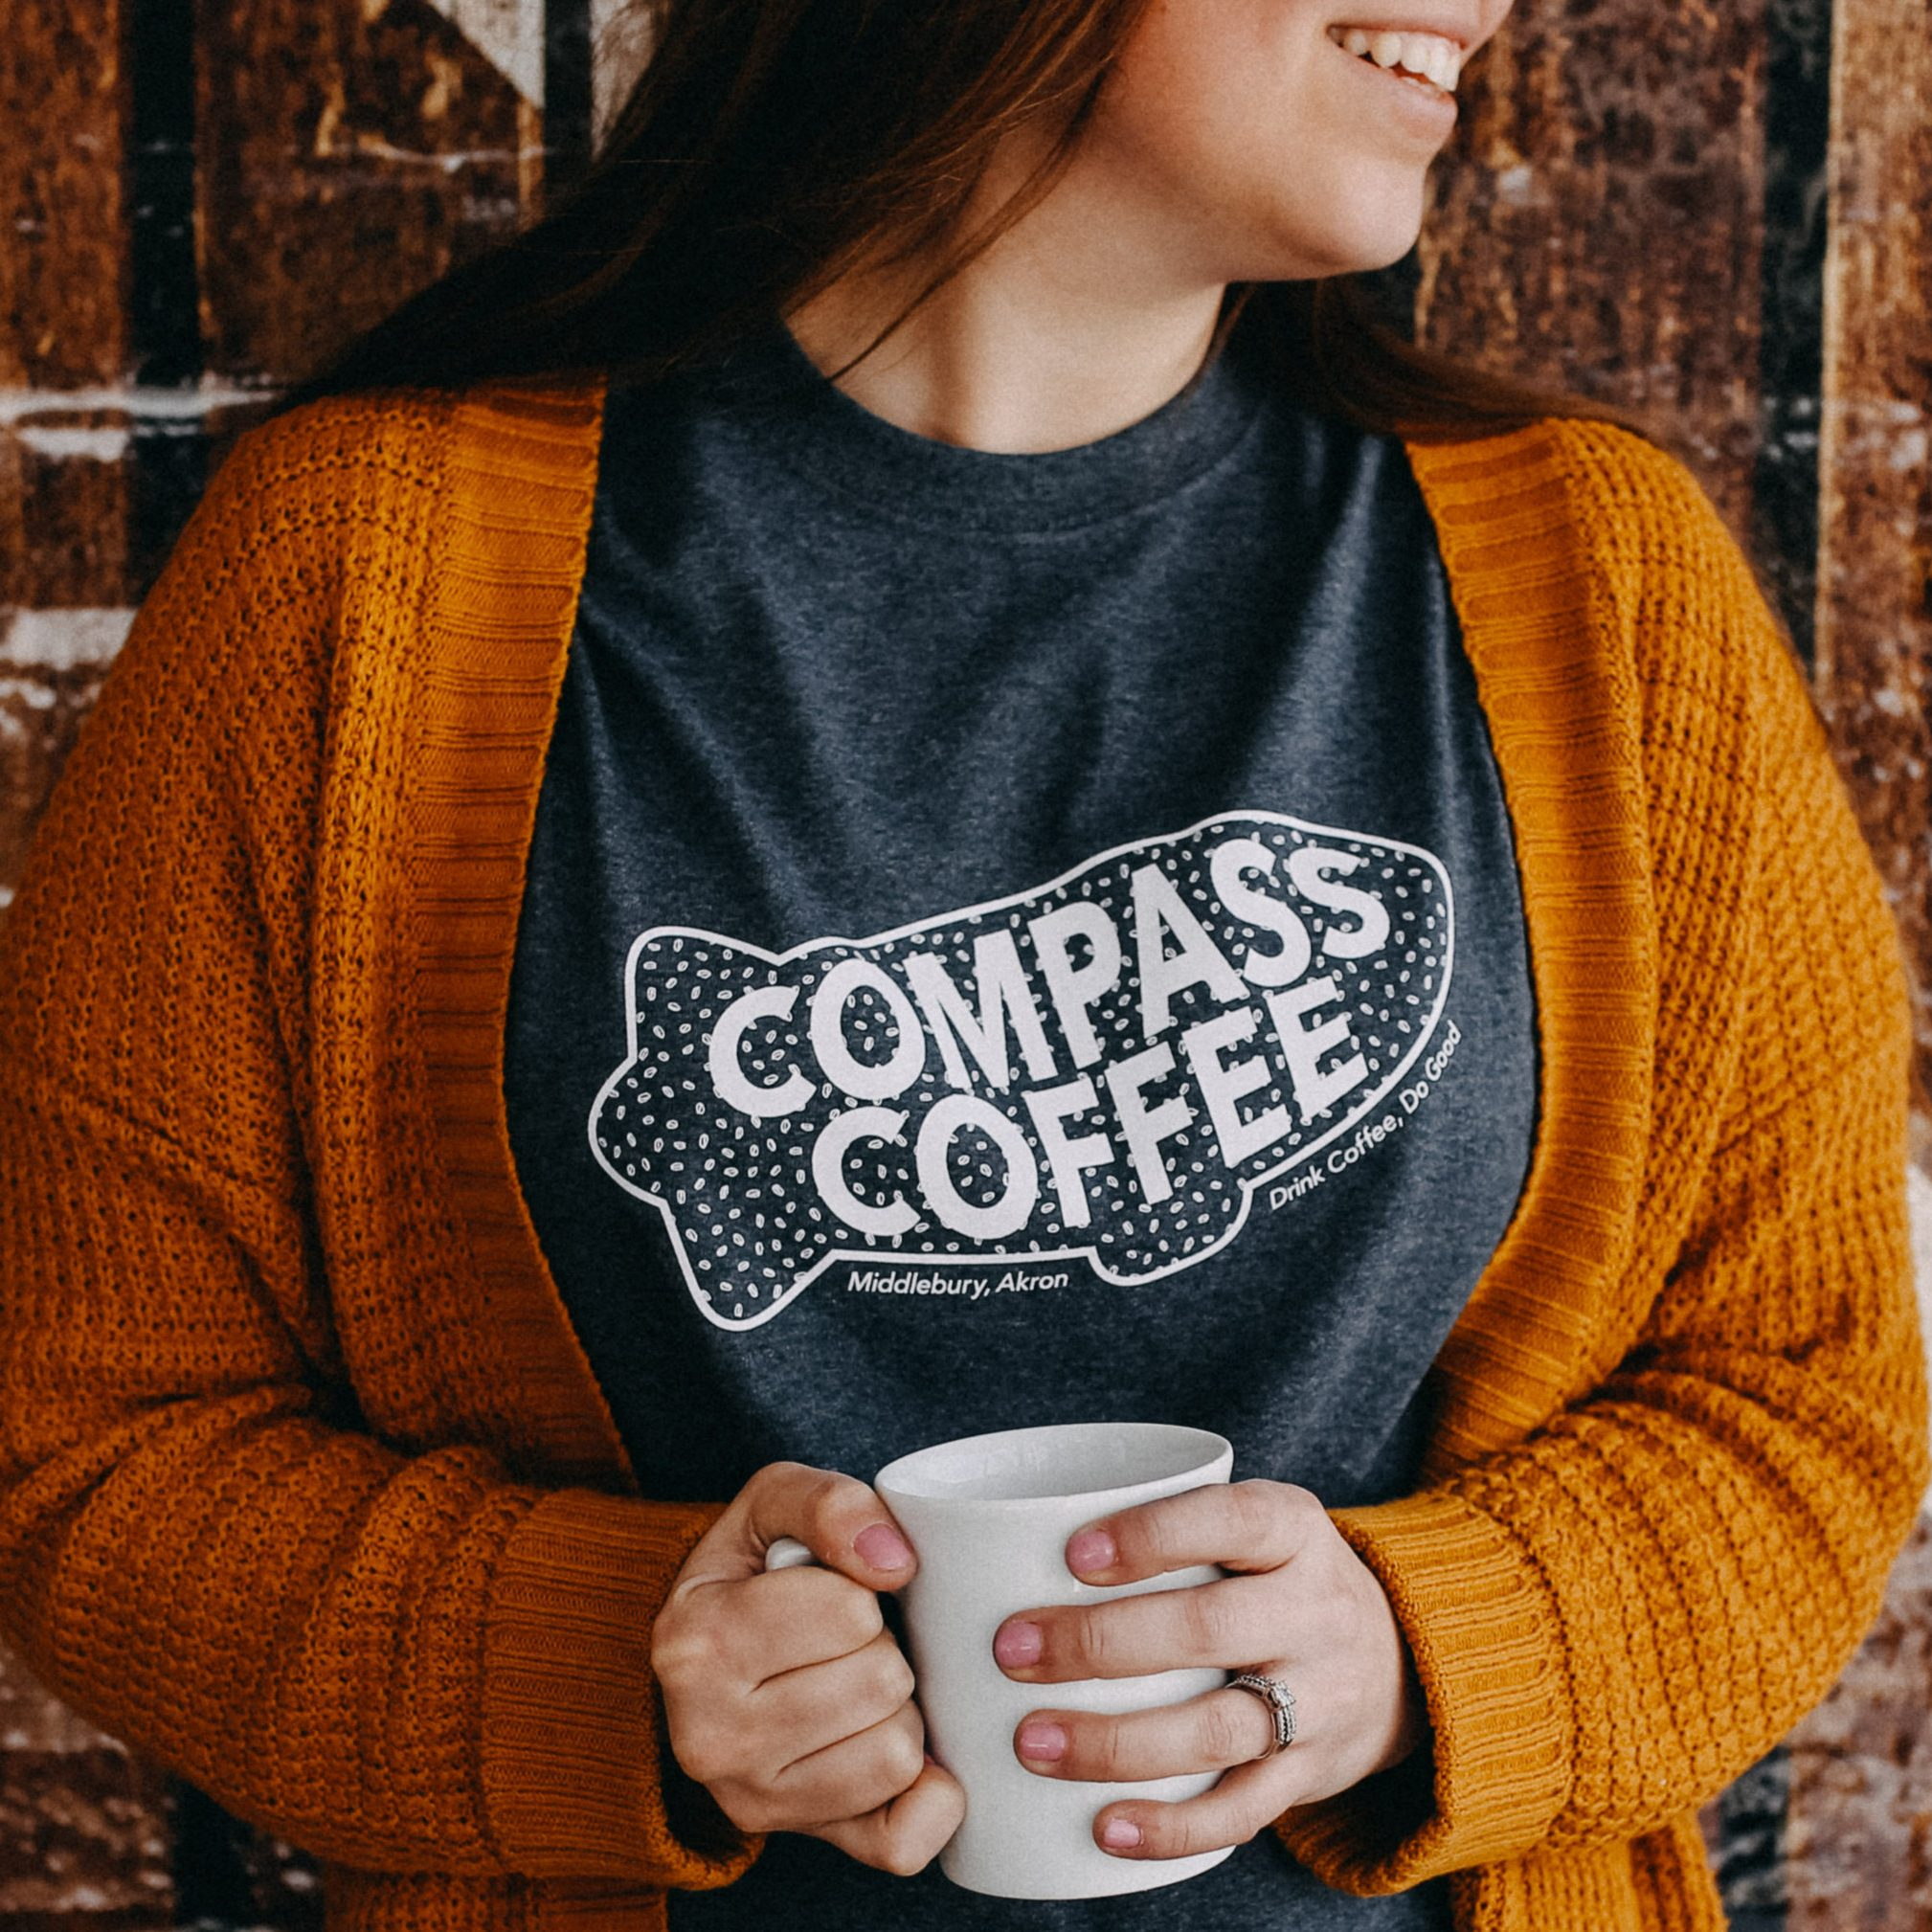 View More: http://raeoflightphotography.pass.us/compass-coffee-pics